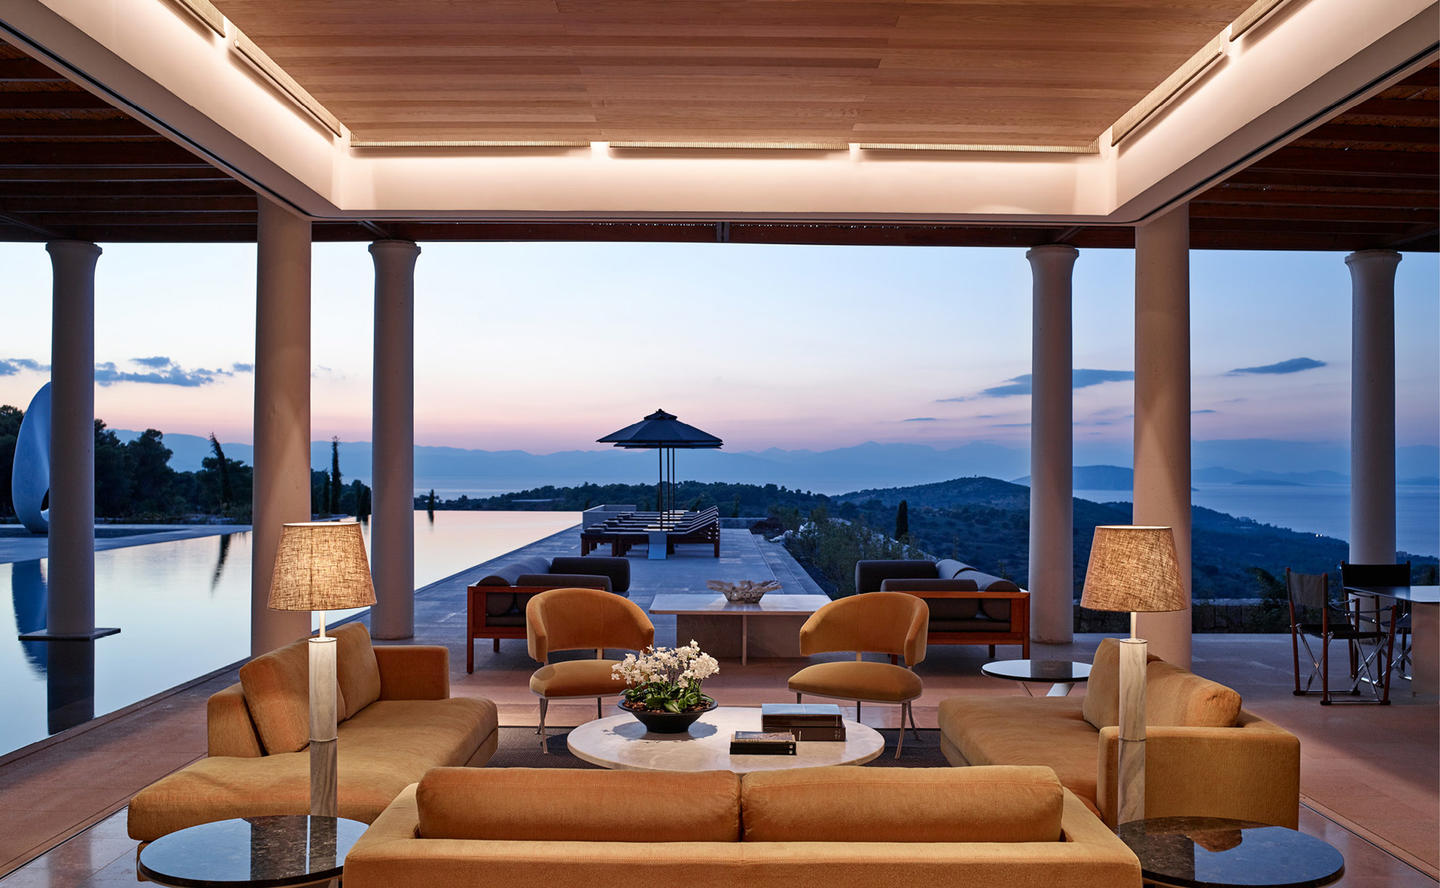 Outdoor Living Area Next to Swimming Pool, Villa 20 - Amanzoe, Greece